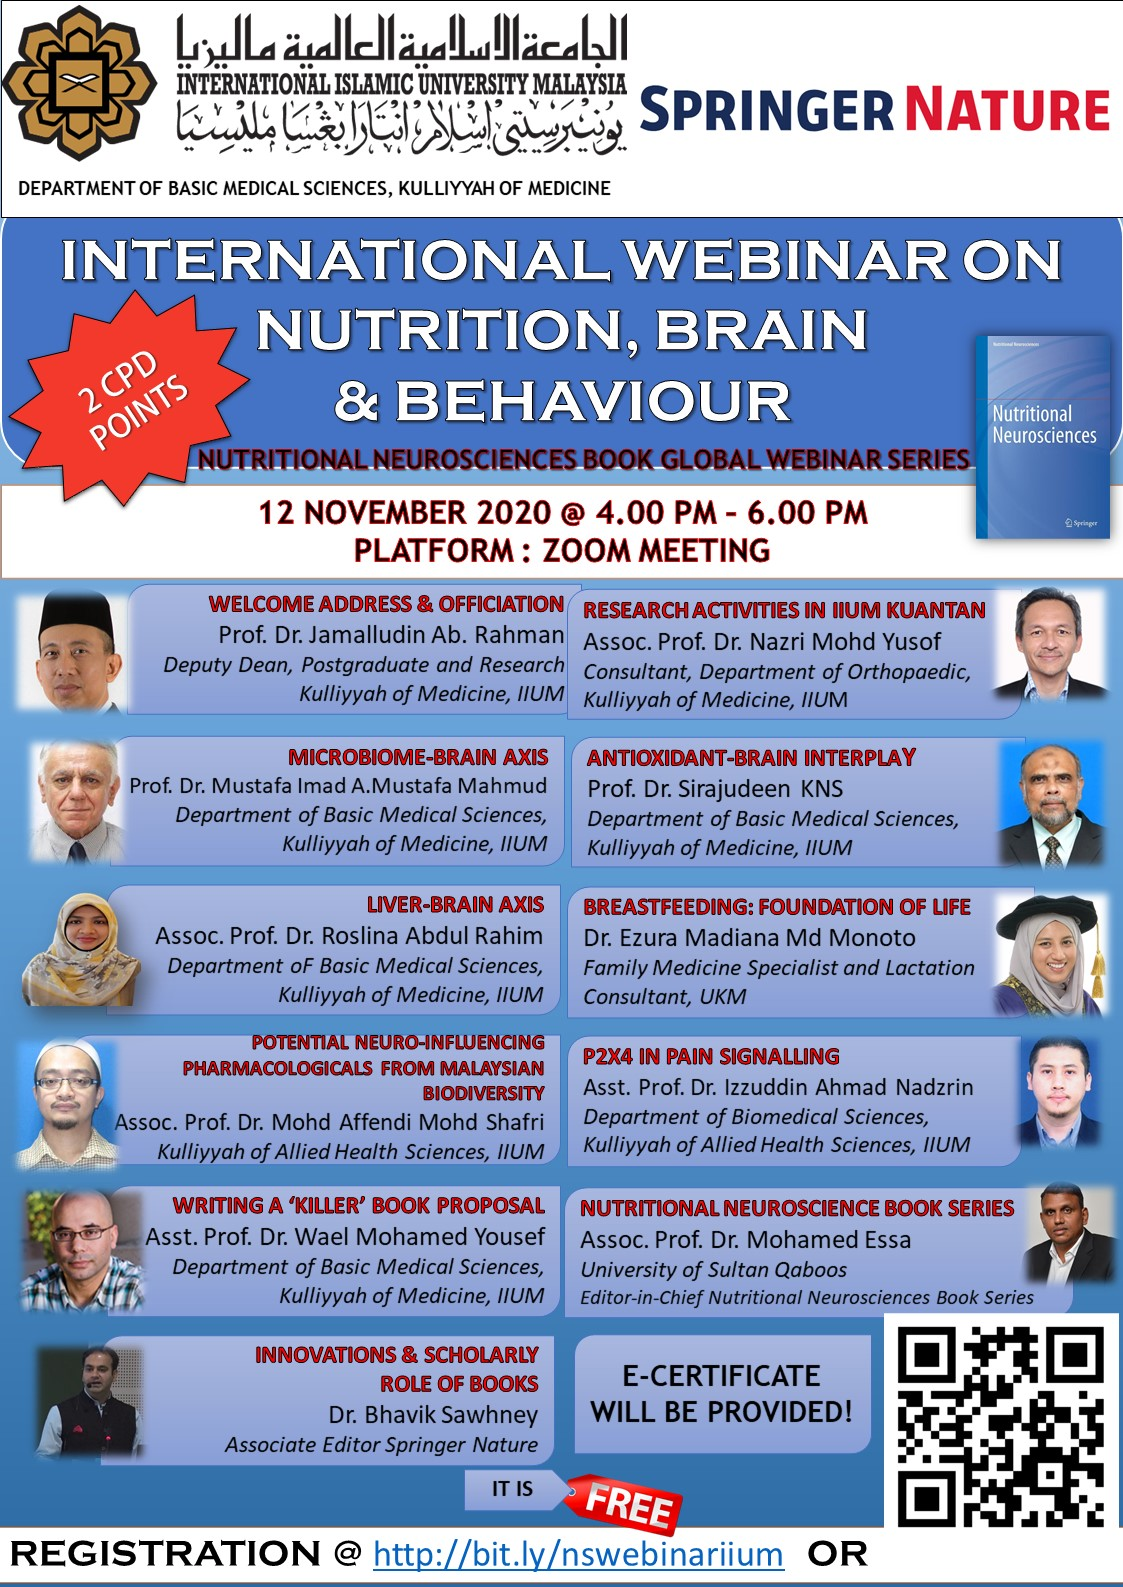 INTERNATIONAL WEBINAR ON NUTRITION, BRAIN AND BEHAVIOUR